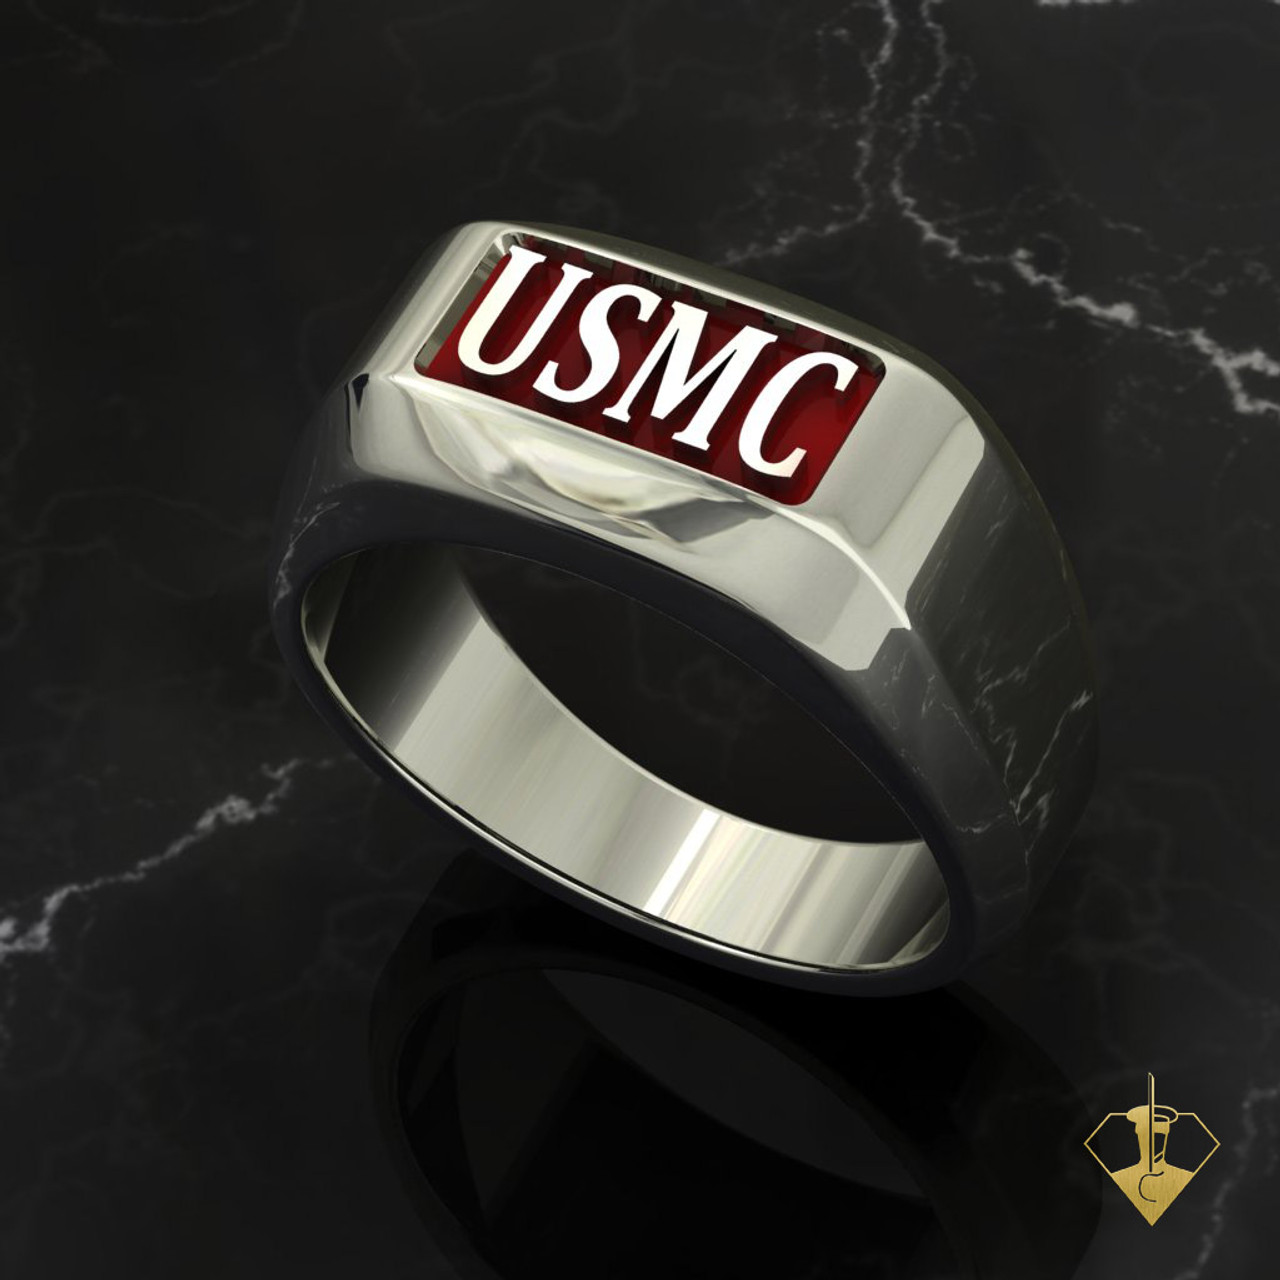 USMC Rugged Marine Ring  White Gold or Silver with Red Inlay